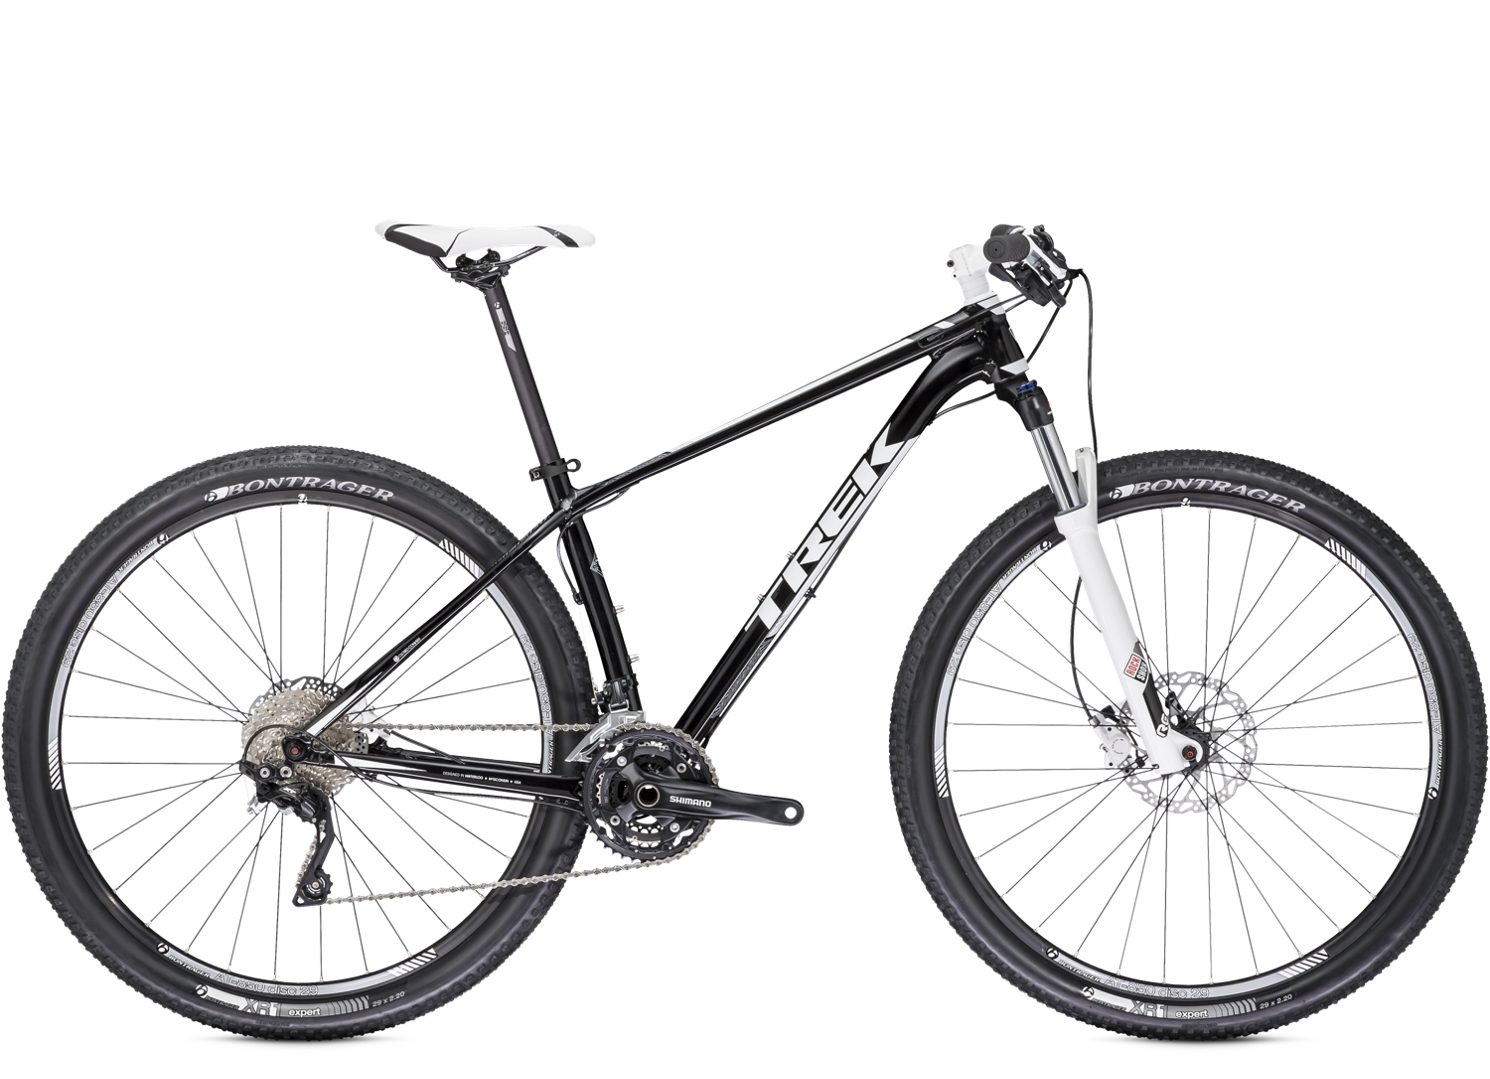 2014 Trek Superfly 5 - New!